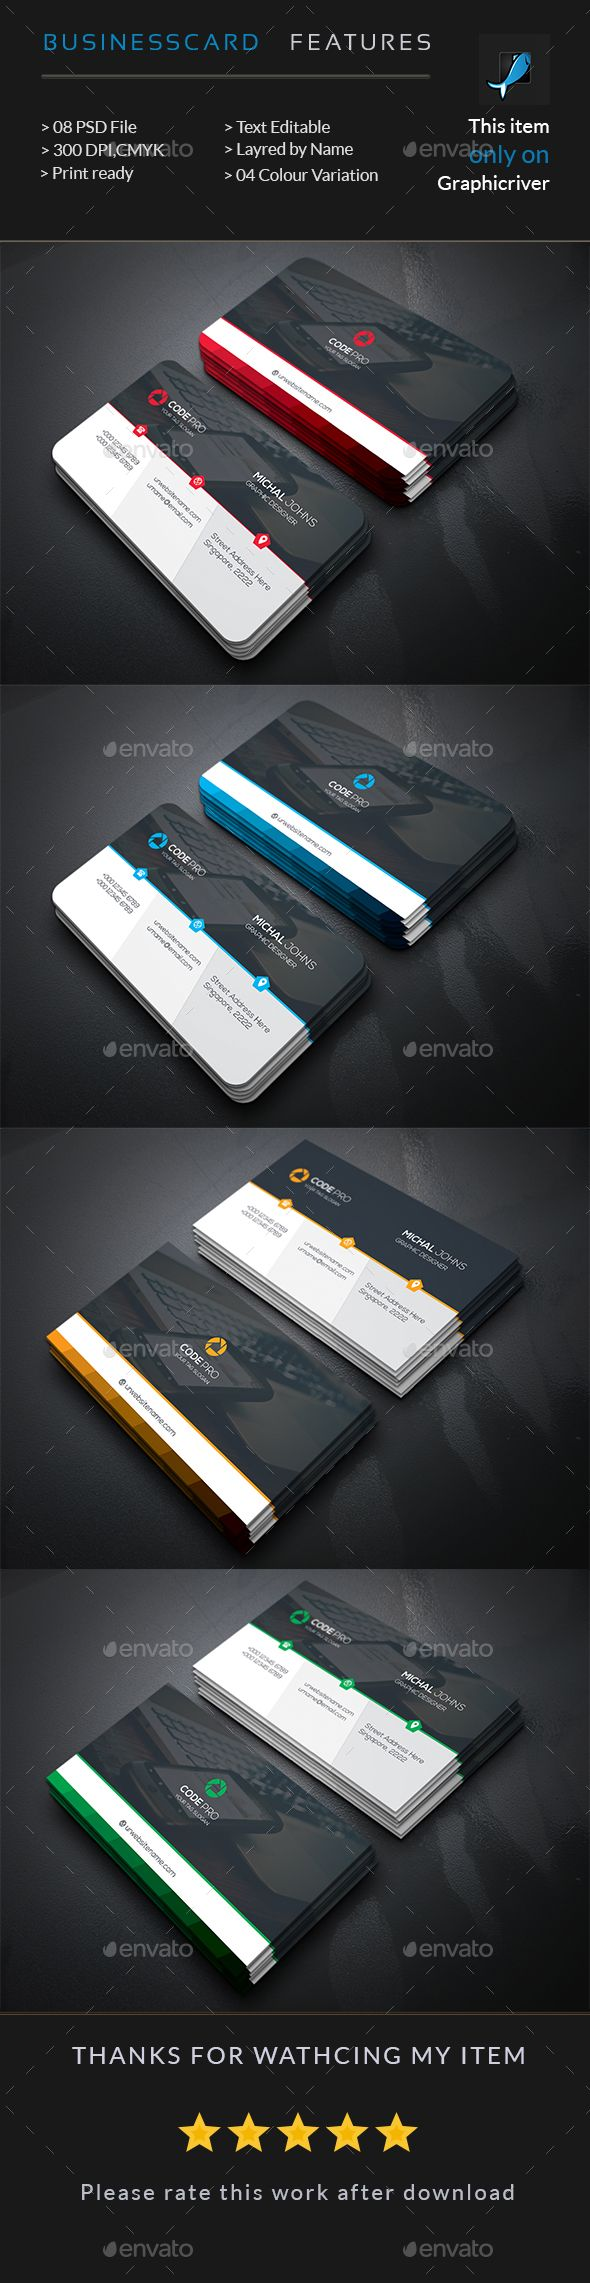 36 Best Construction And Maintenance Business Cards Ideas Images On